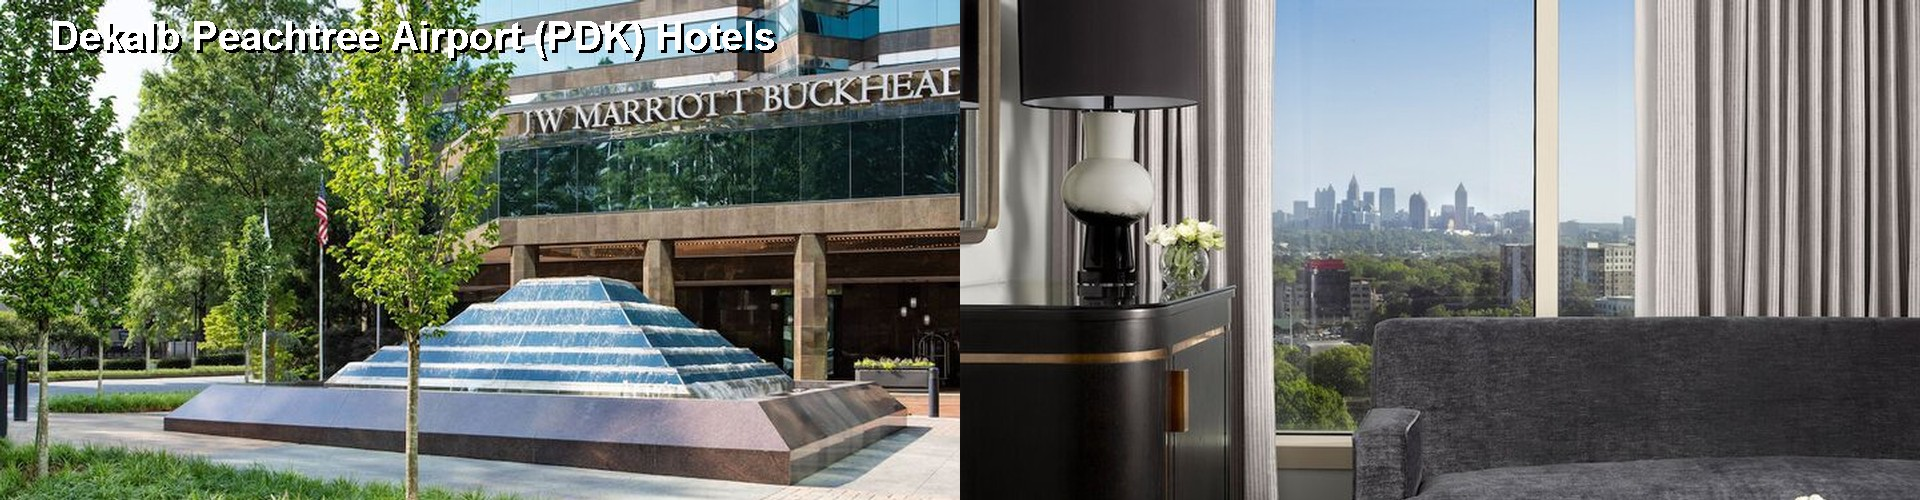 5 Best Hotels near Dekalb Peachtree Airport (PDK)